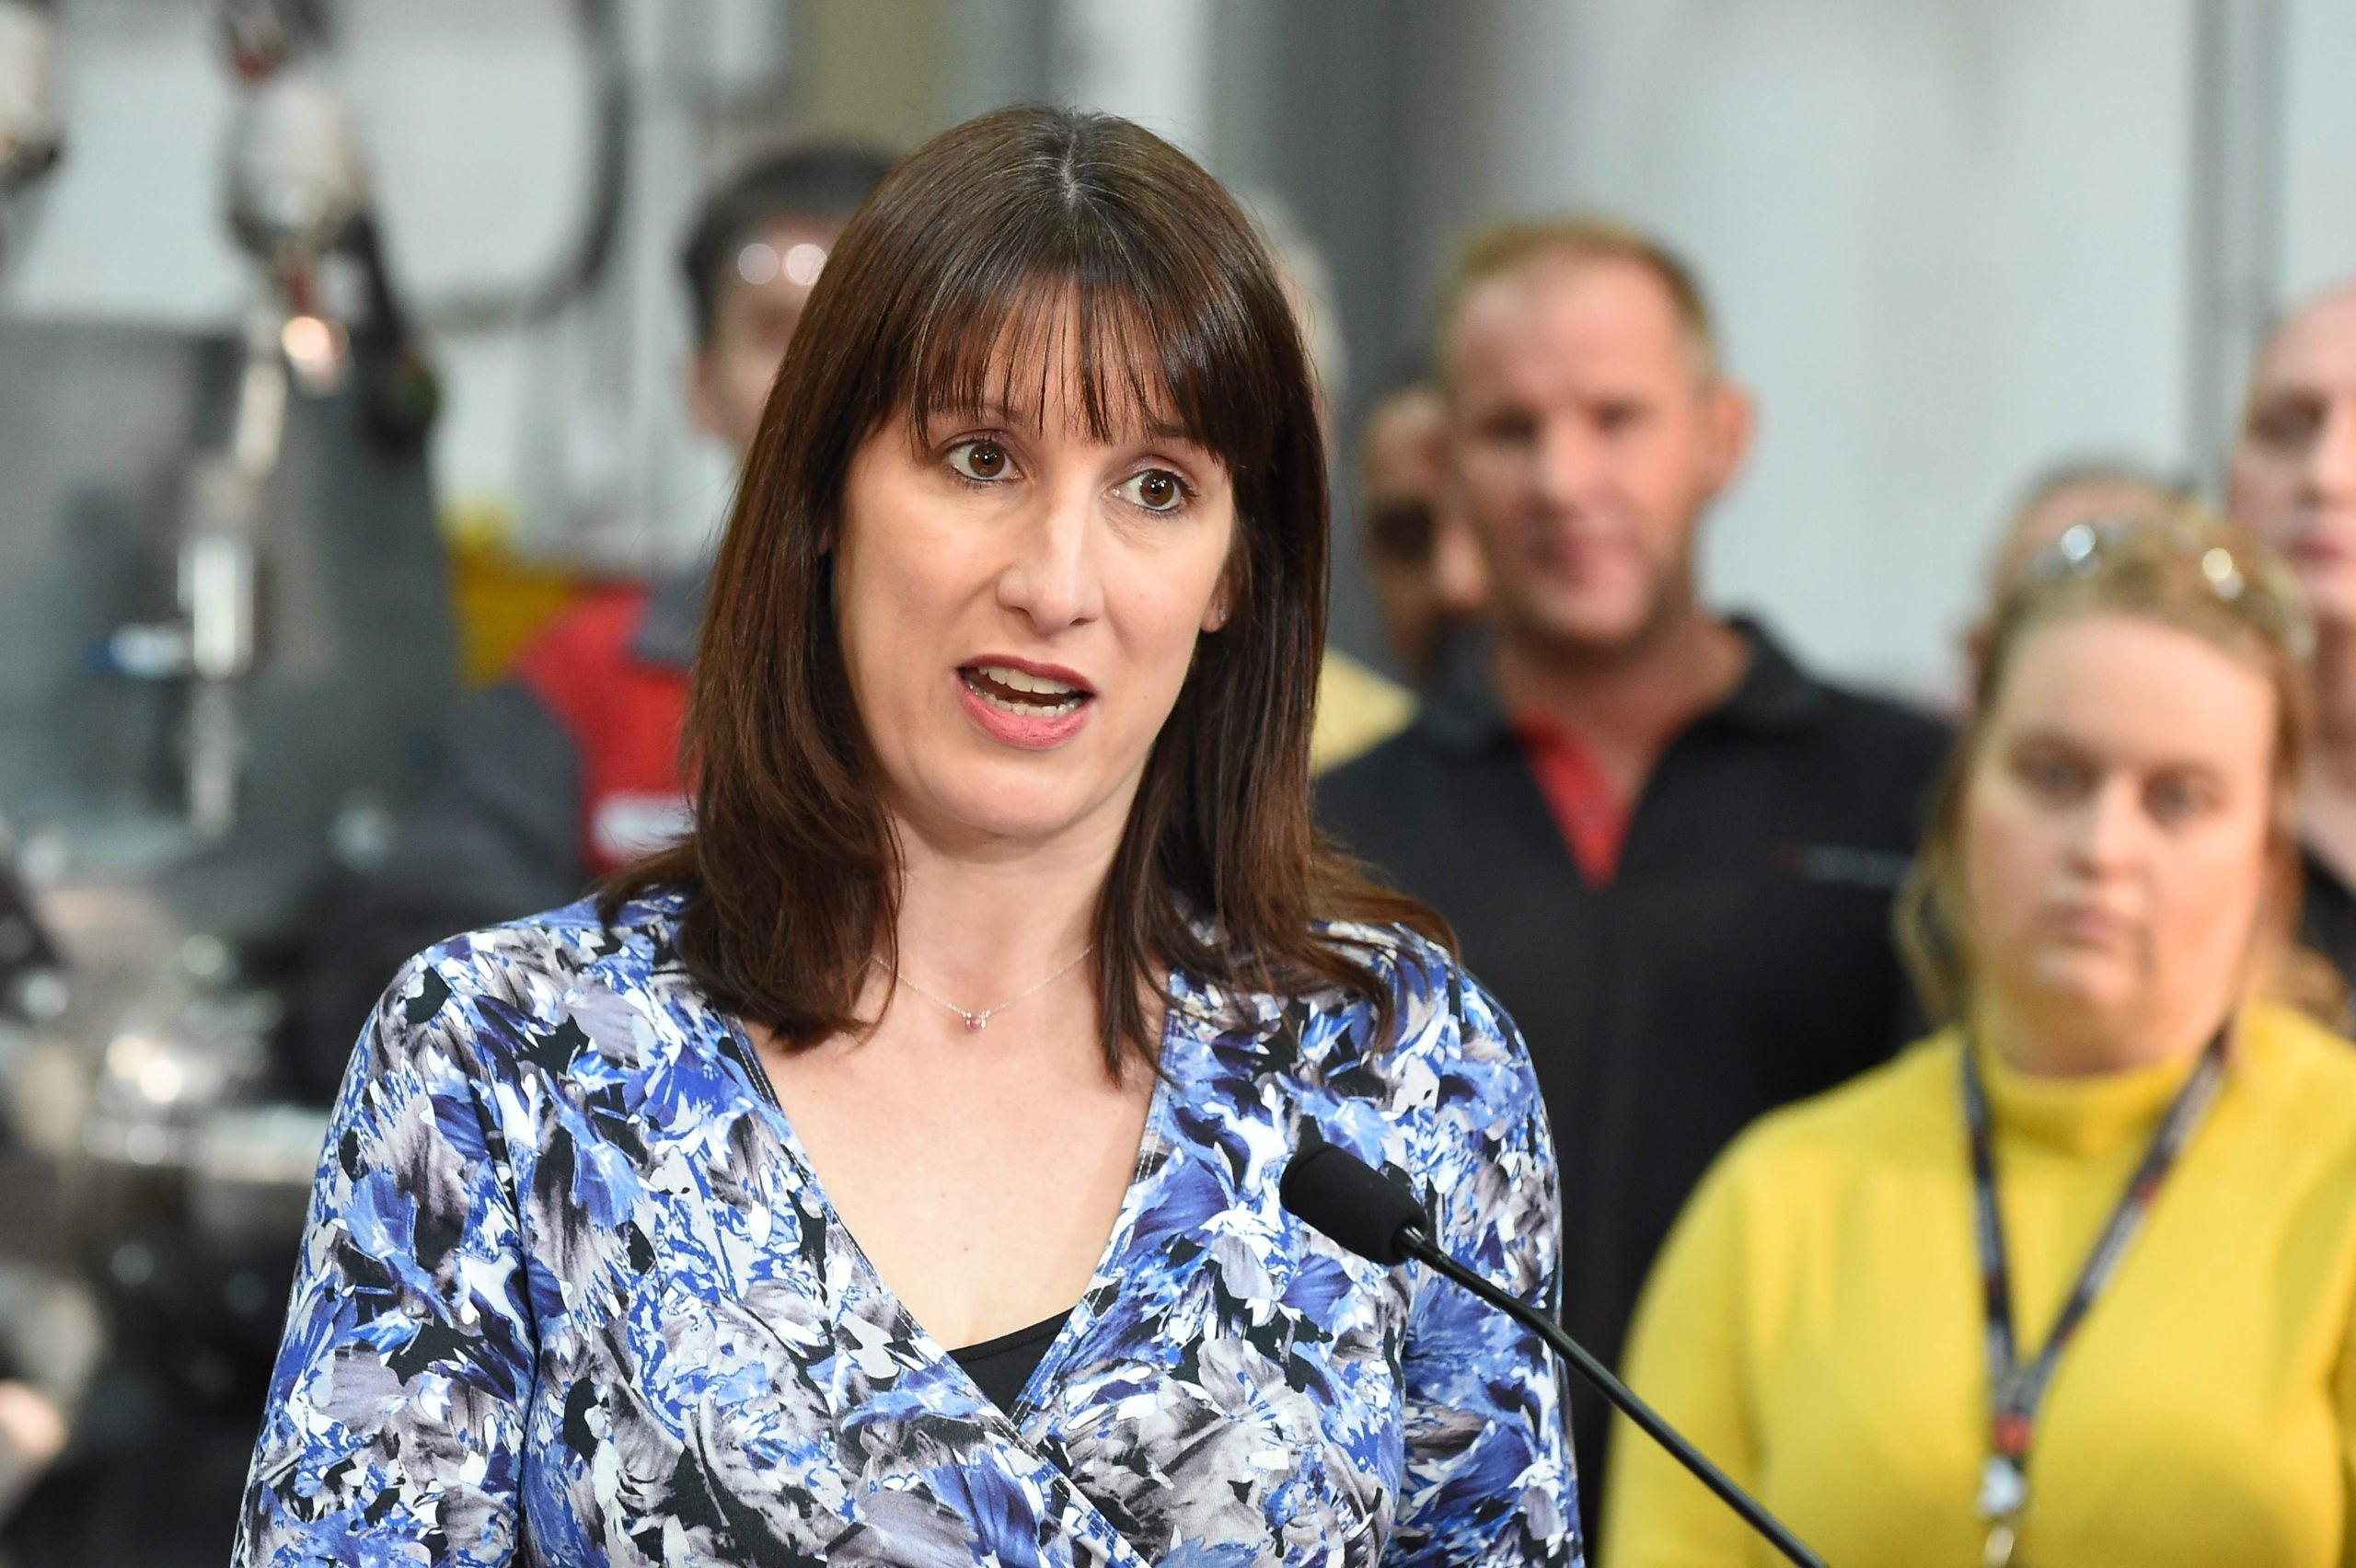 Rachel Reeves MP: Ending free movement should be a red line for Labour post-Brexit